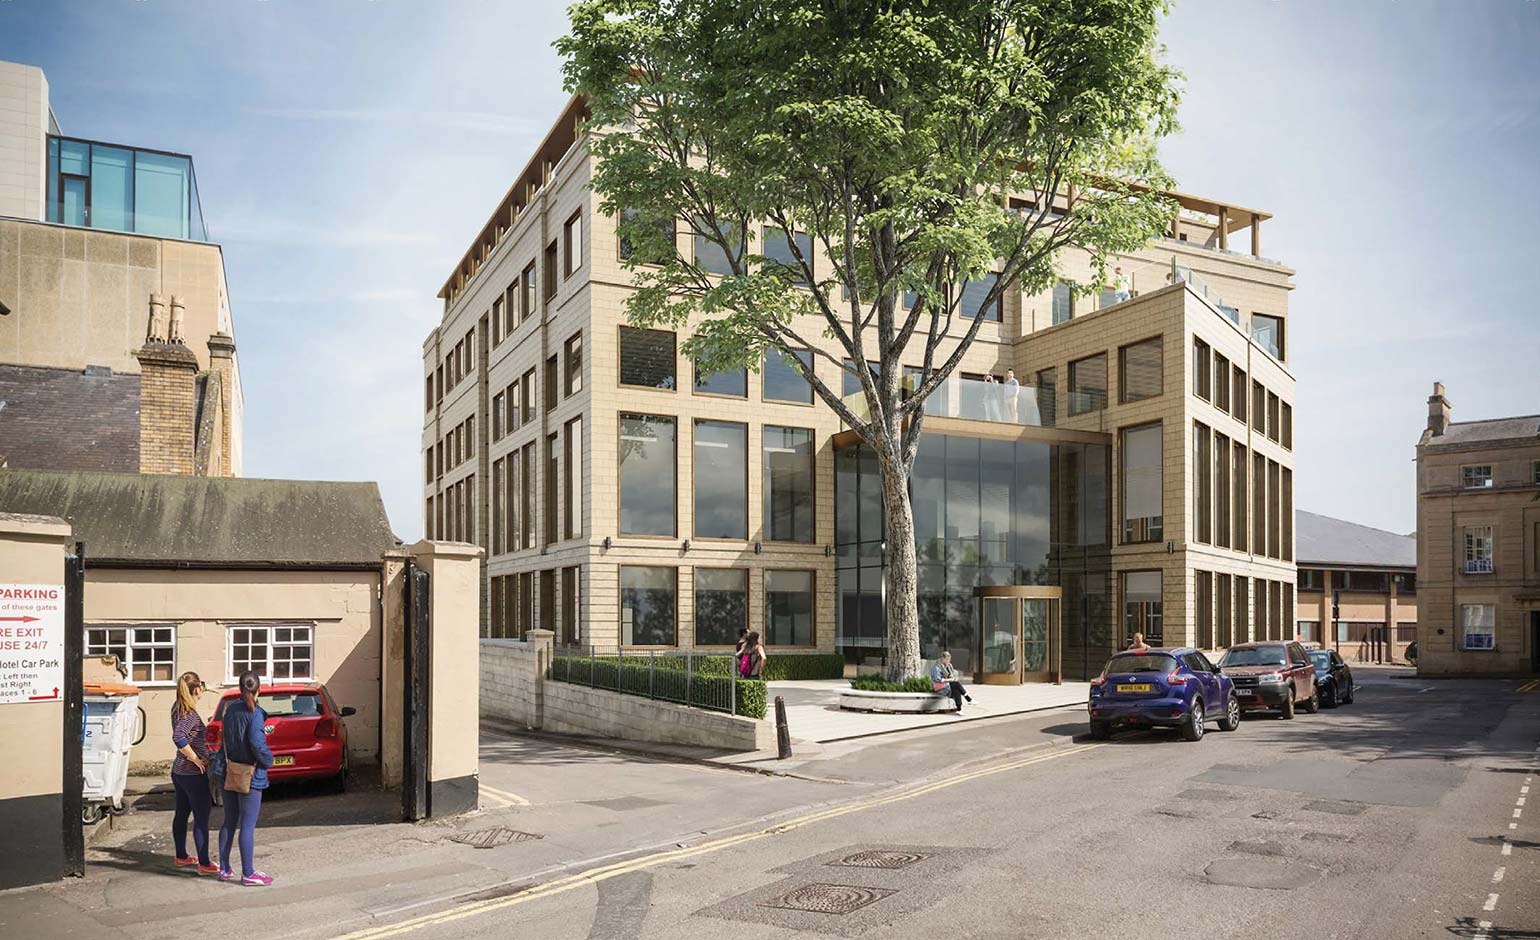 Bath offices expected to become flats after plans for extension are refused